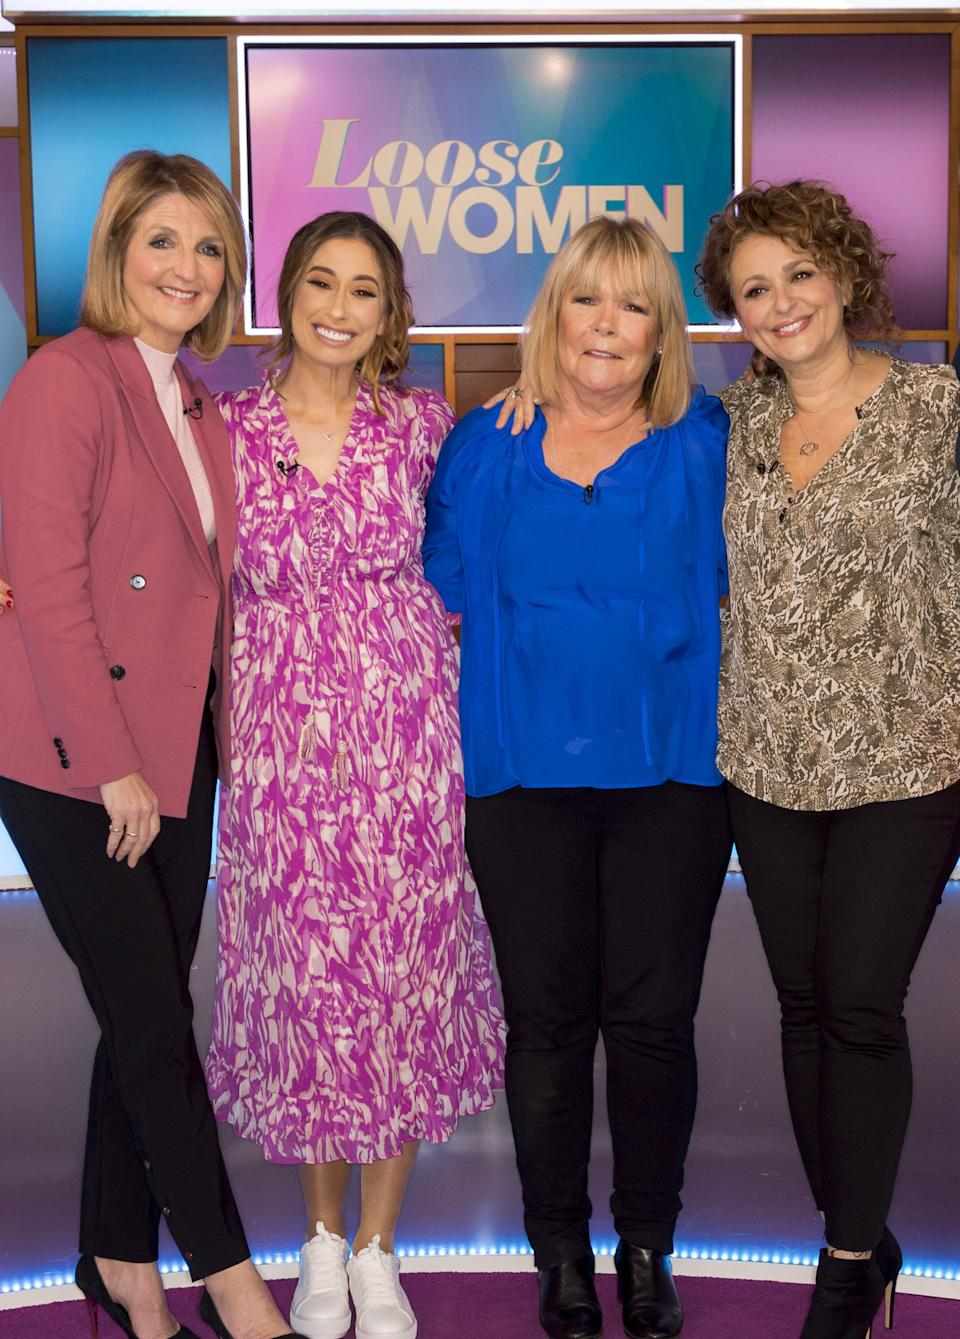 """Linda Robson was on holiday with her Loose Women co-stars when she suffered what she described as a """"meltdown"""" (Photo: Ken McKay/ITV/Shutterstock)"""